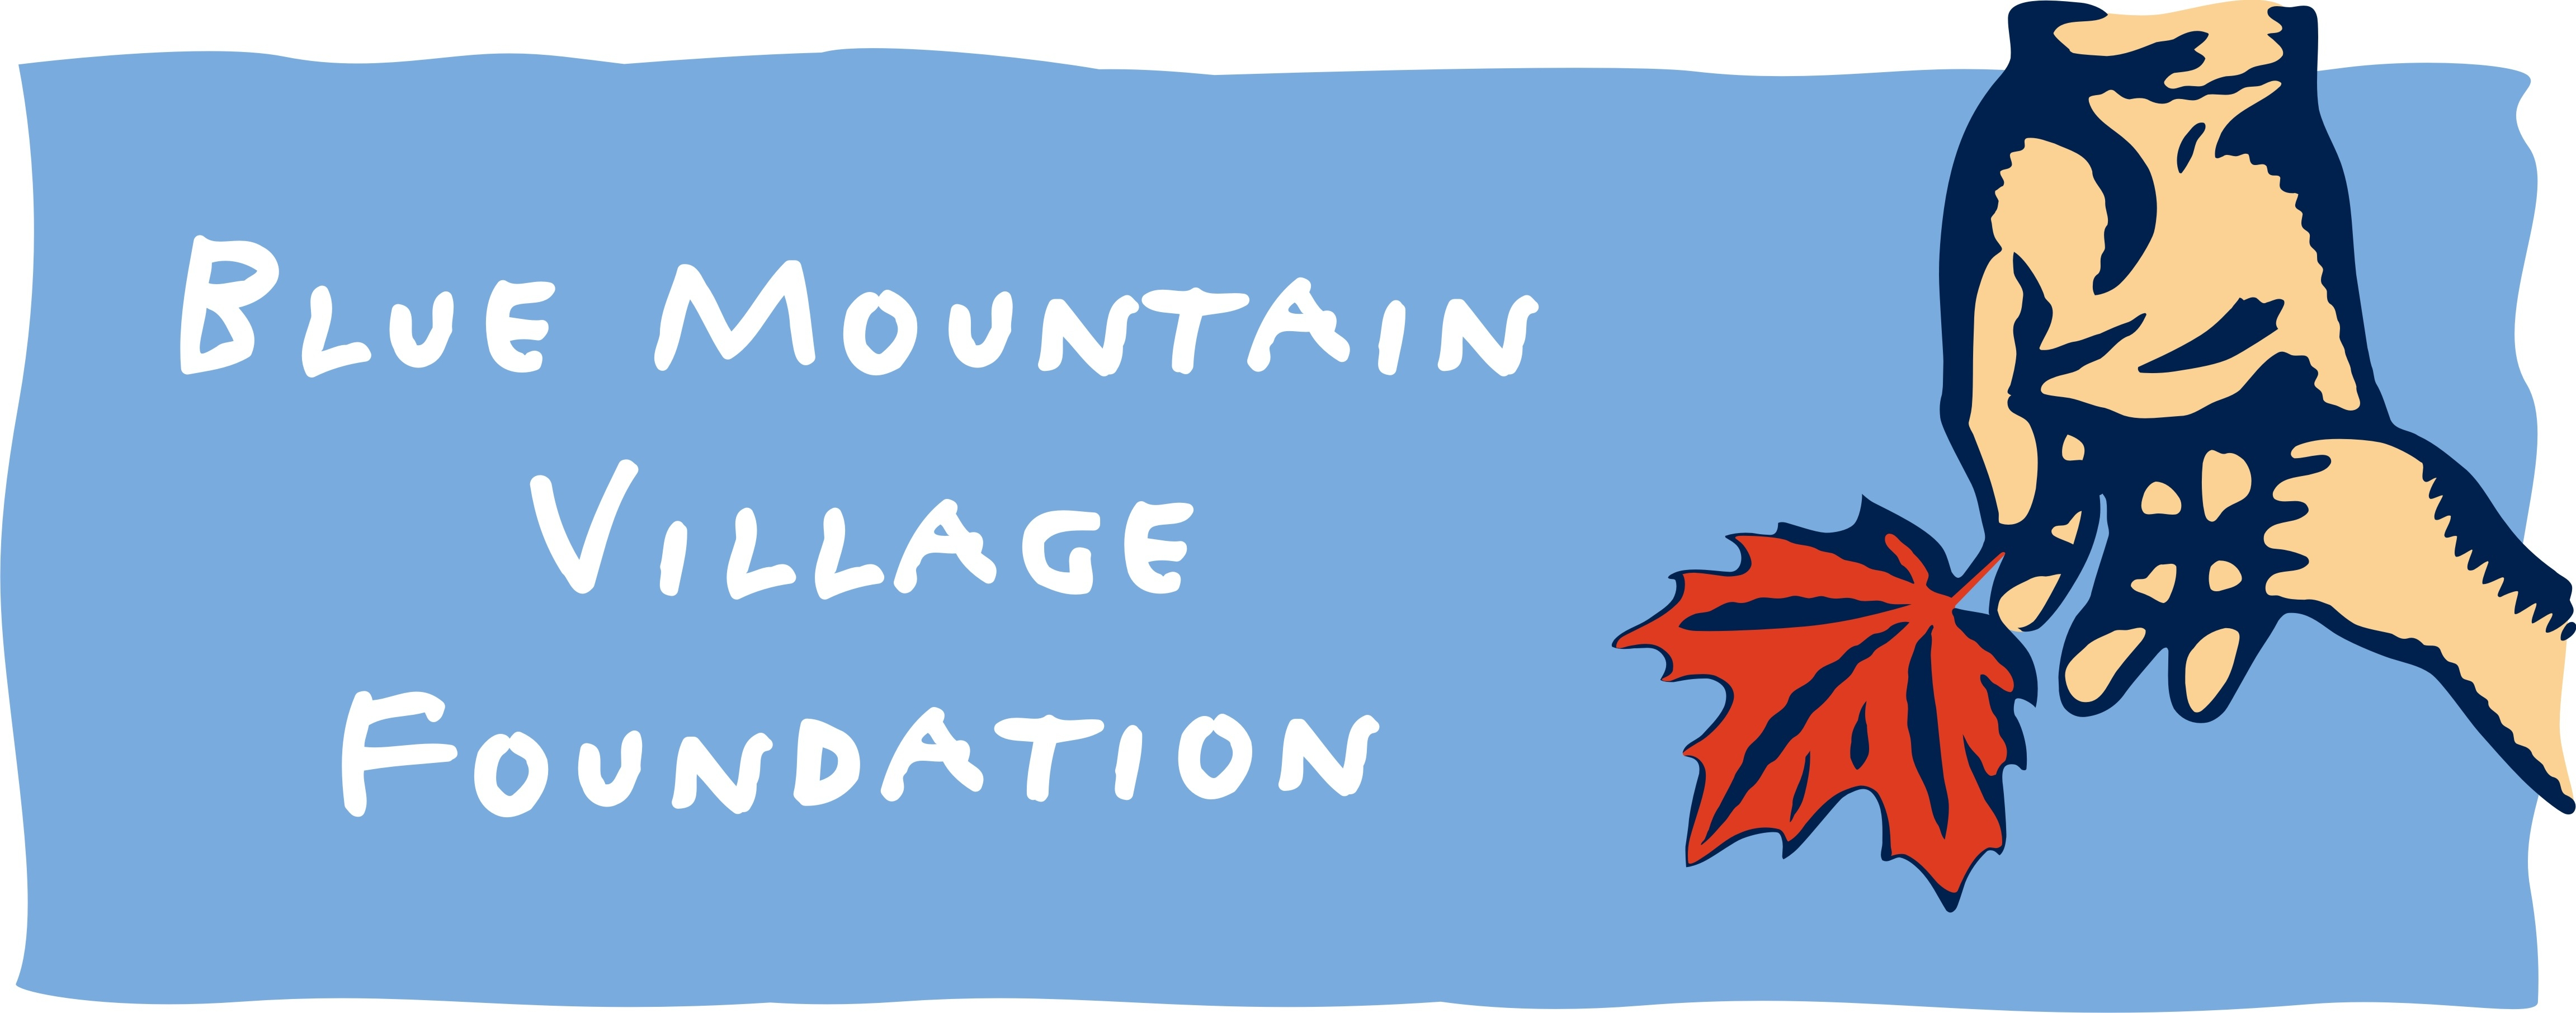 Blue Mountain Village Association